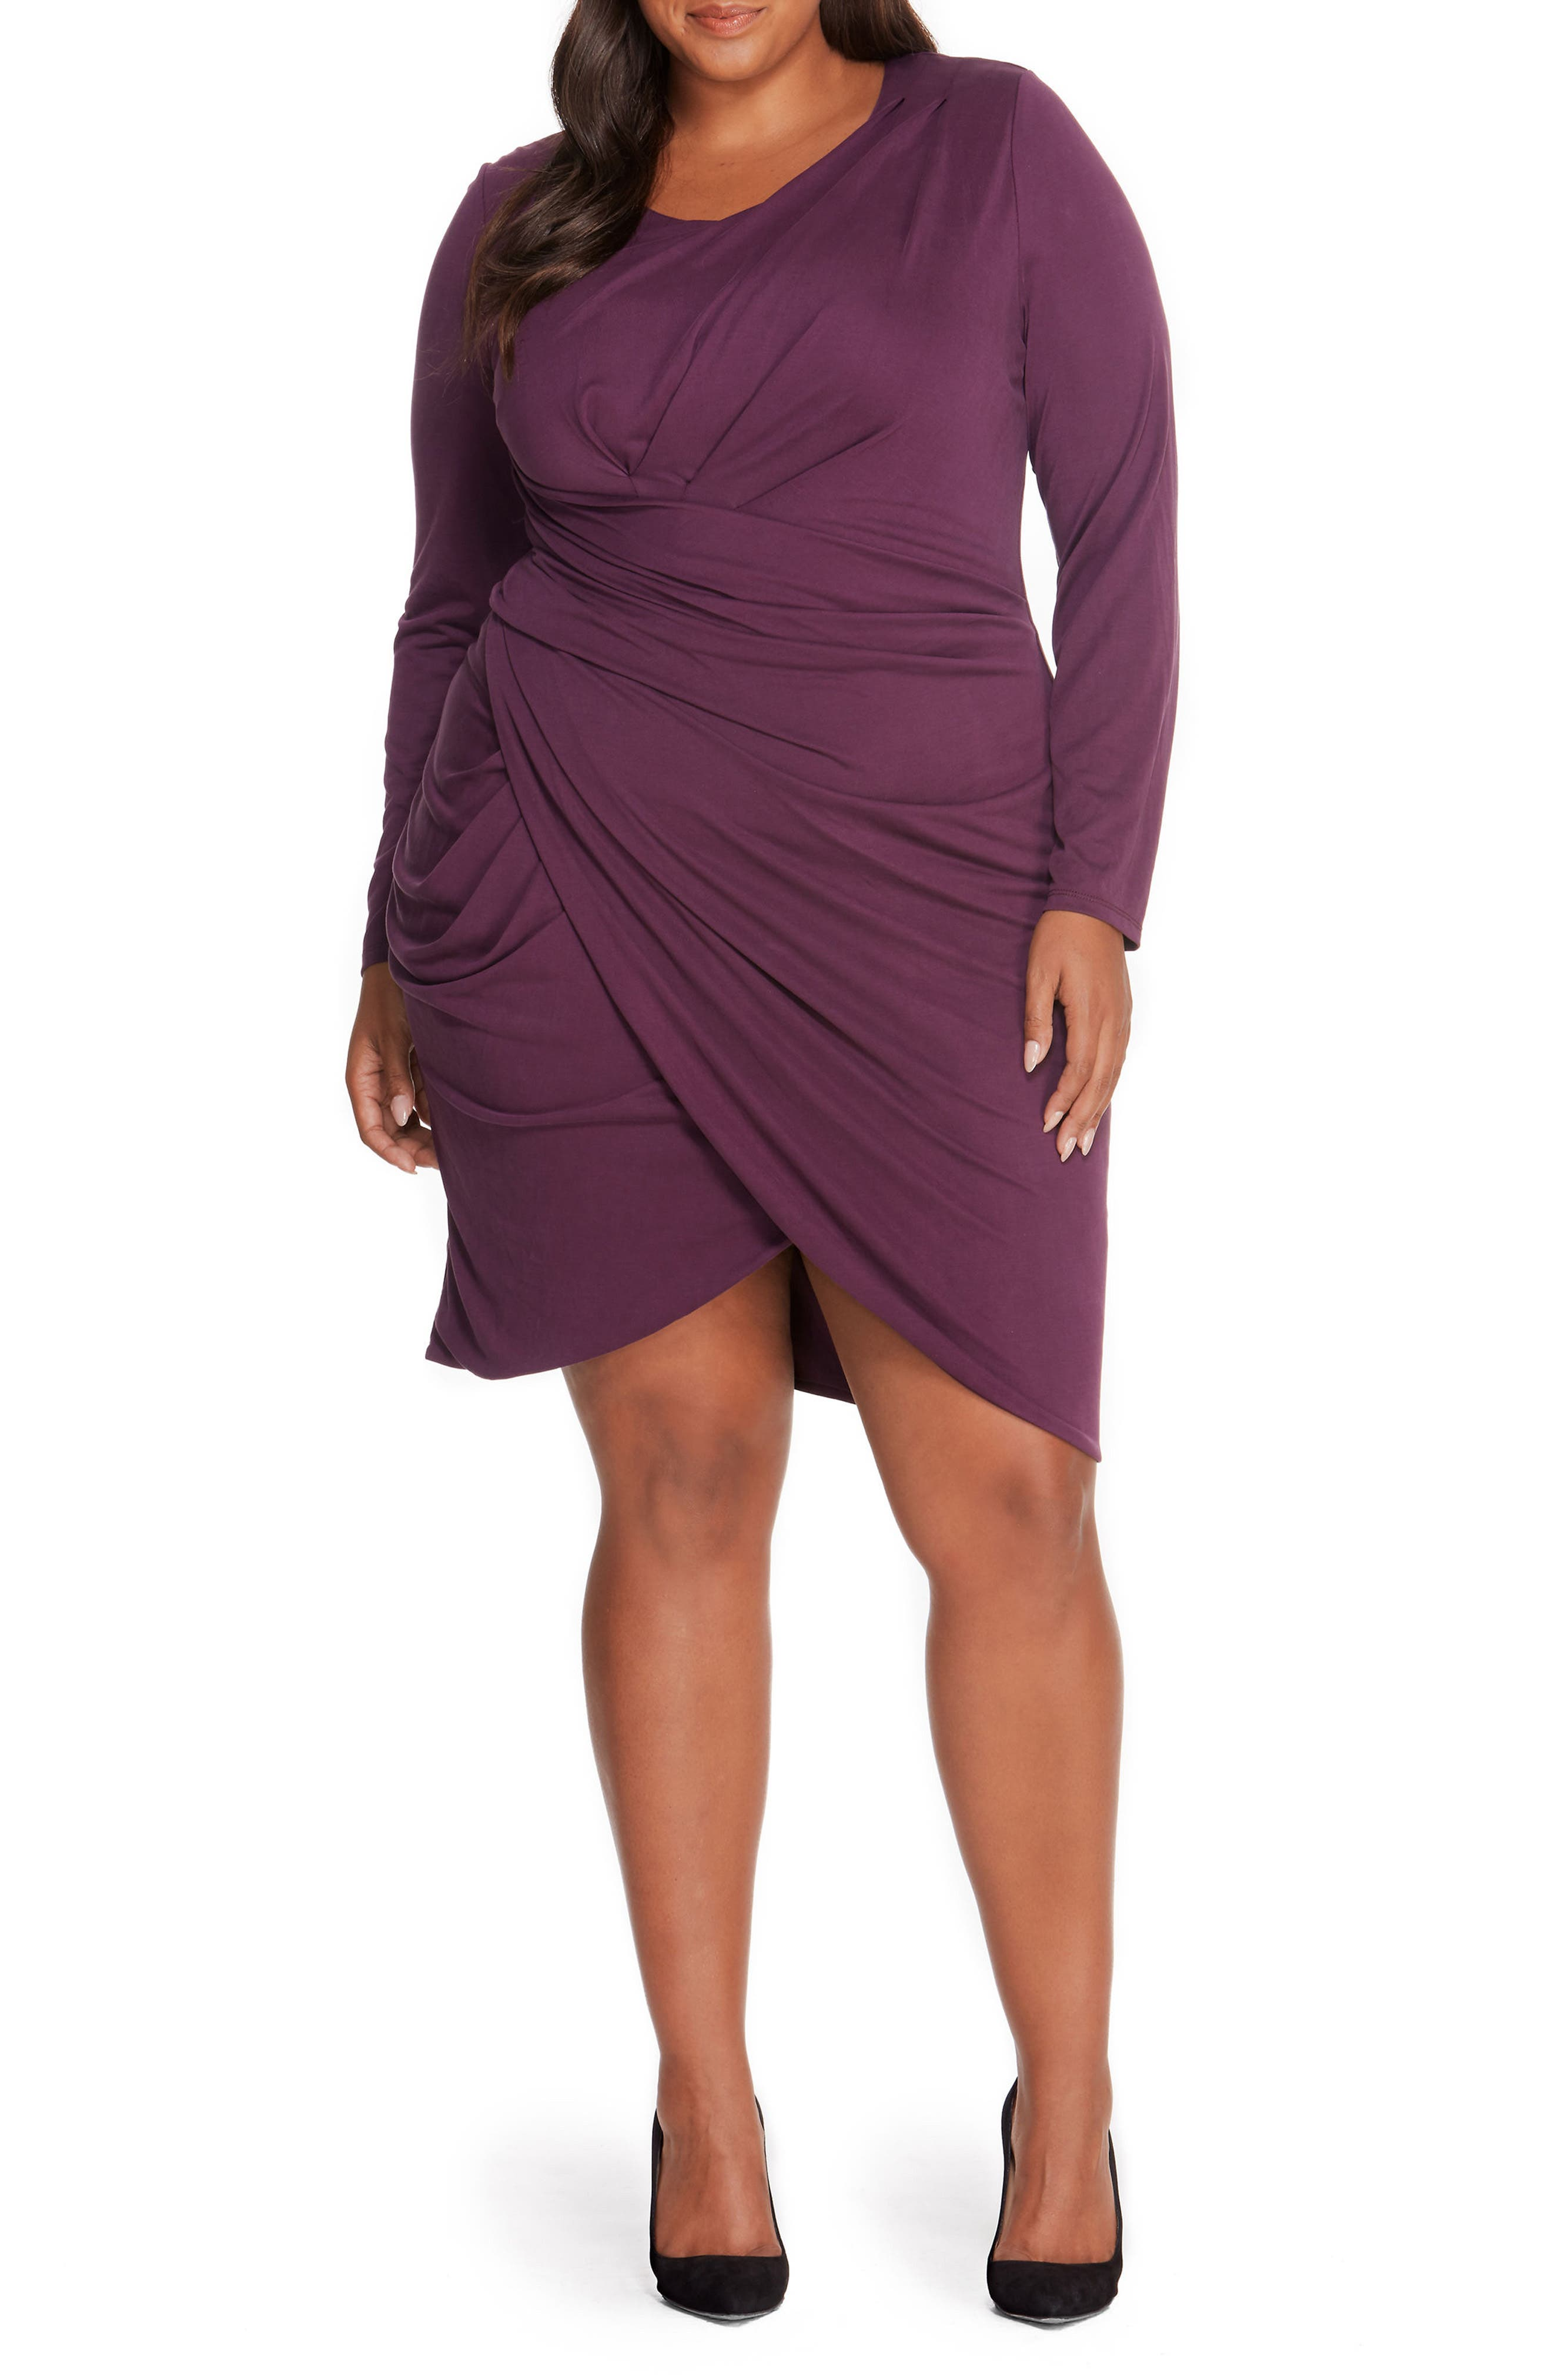 Alternate Image 1 Selected - Rebel Wilson x Angels Pleated Faux Wrap Dress (Plus Size)